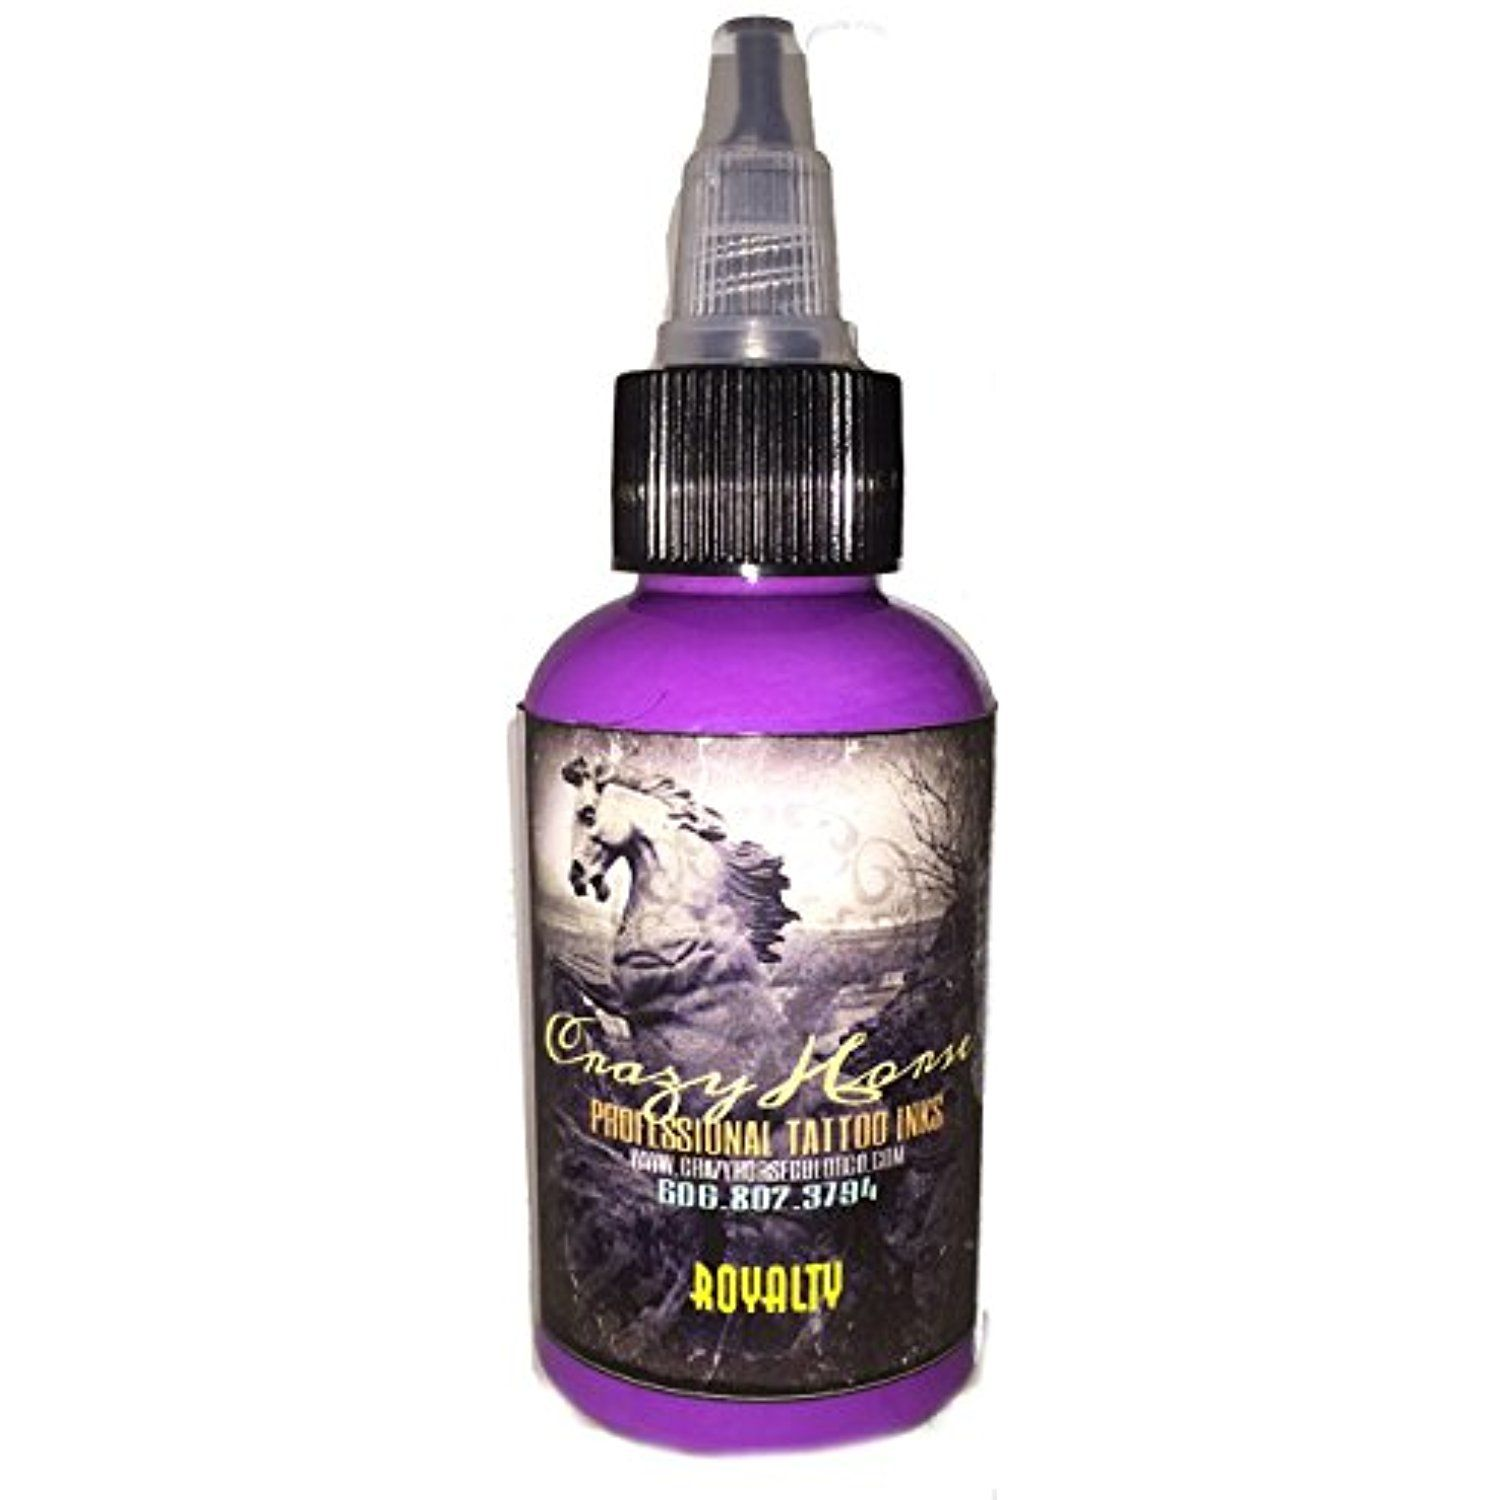 Crazyhorse high quality tattoo ink royalty you can